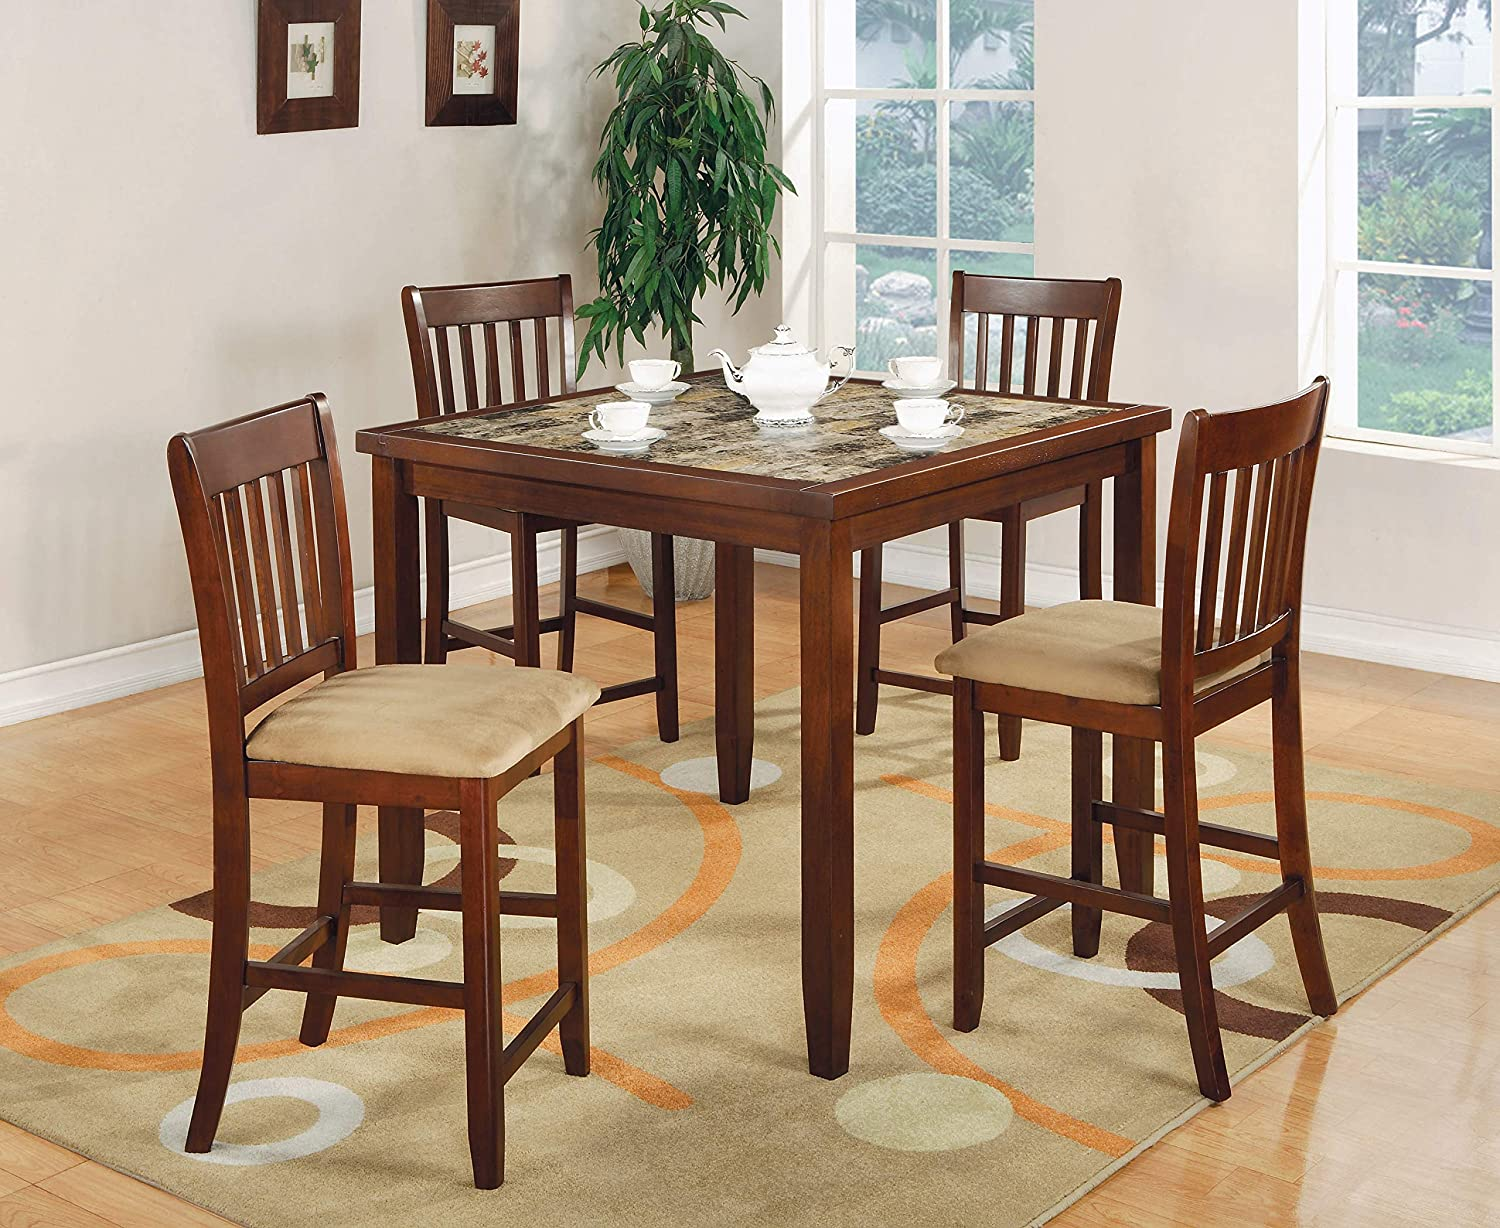 Amazon Com 5 Piece Counter Height Dining Set Red Brown And Tan Table Chair Sets